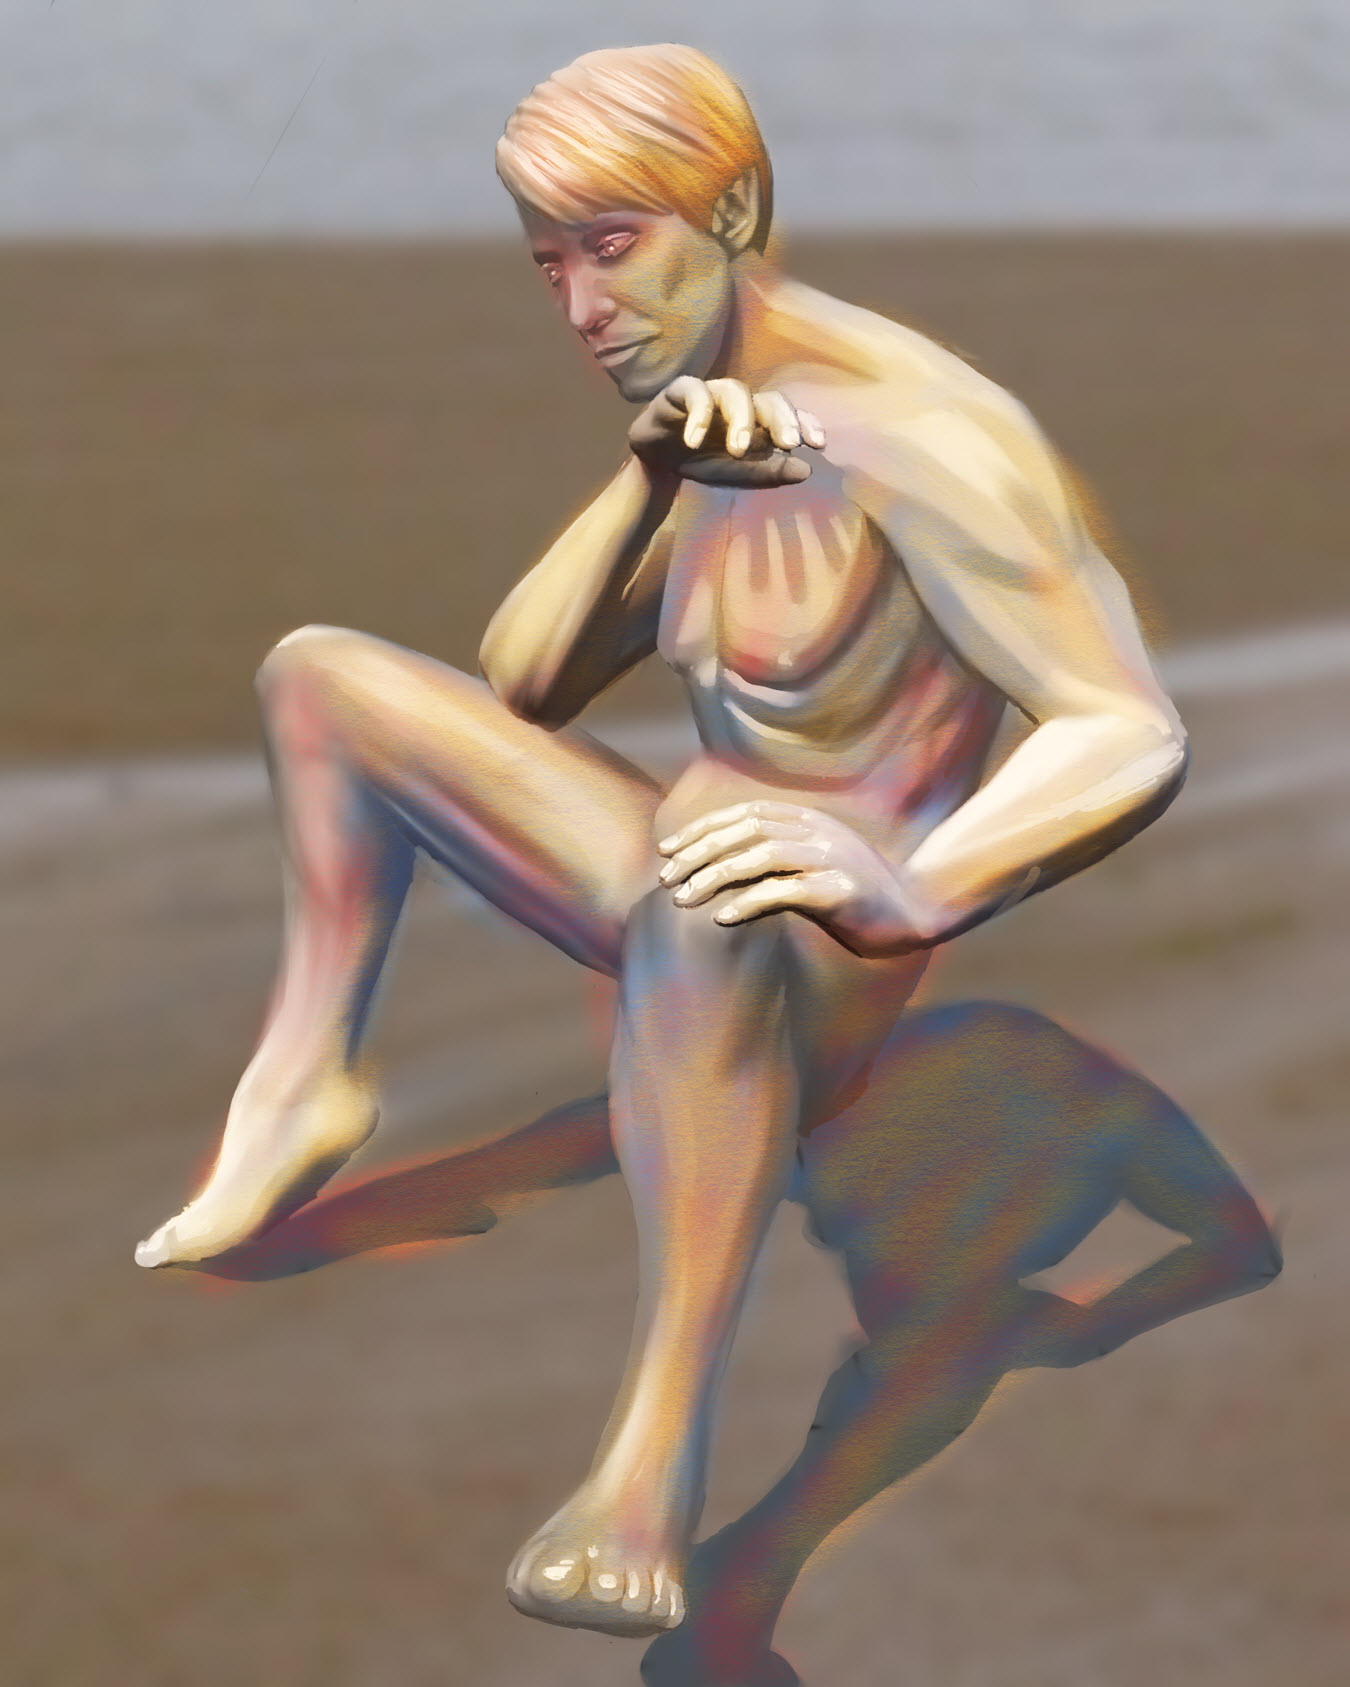 Male Figure 09 done with Procreate for the iPad